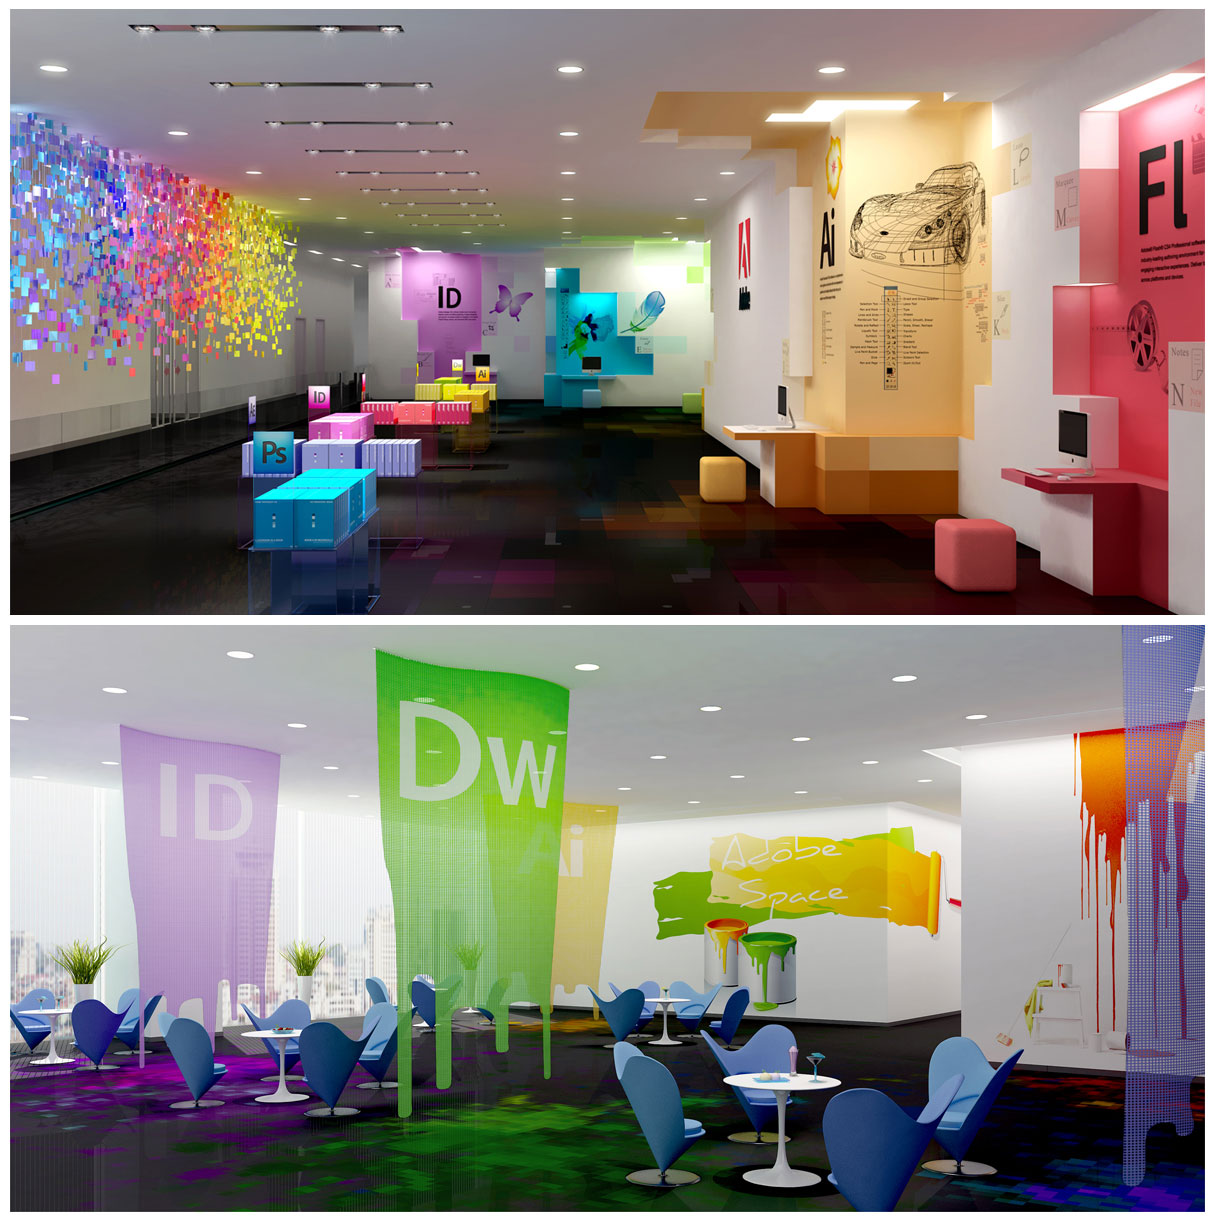 Adobe\'s Office: an artist\'s visualization | Color walls, Adobe and ...